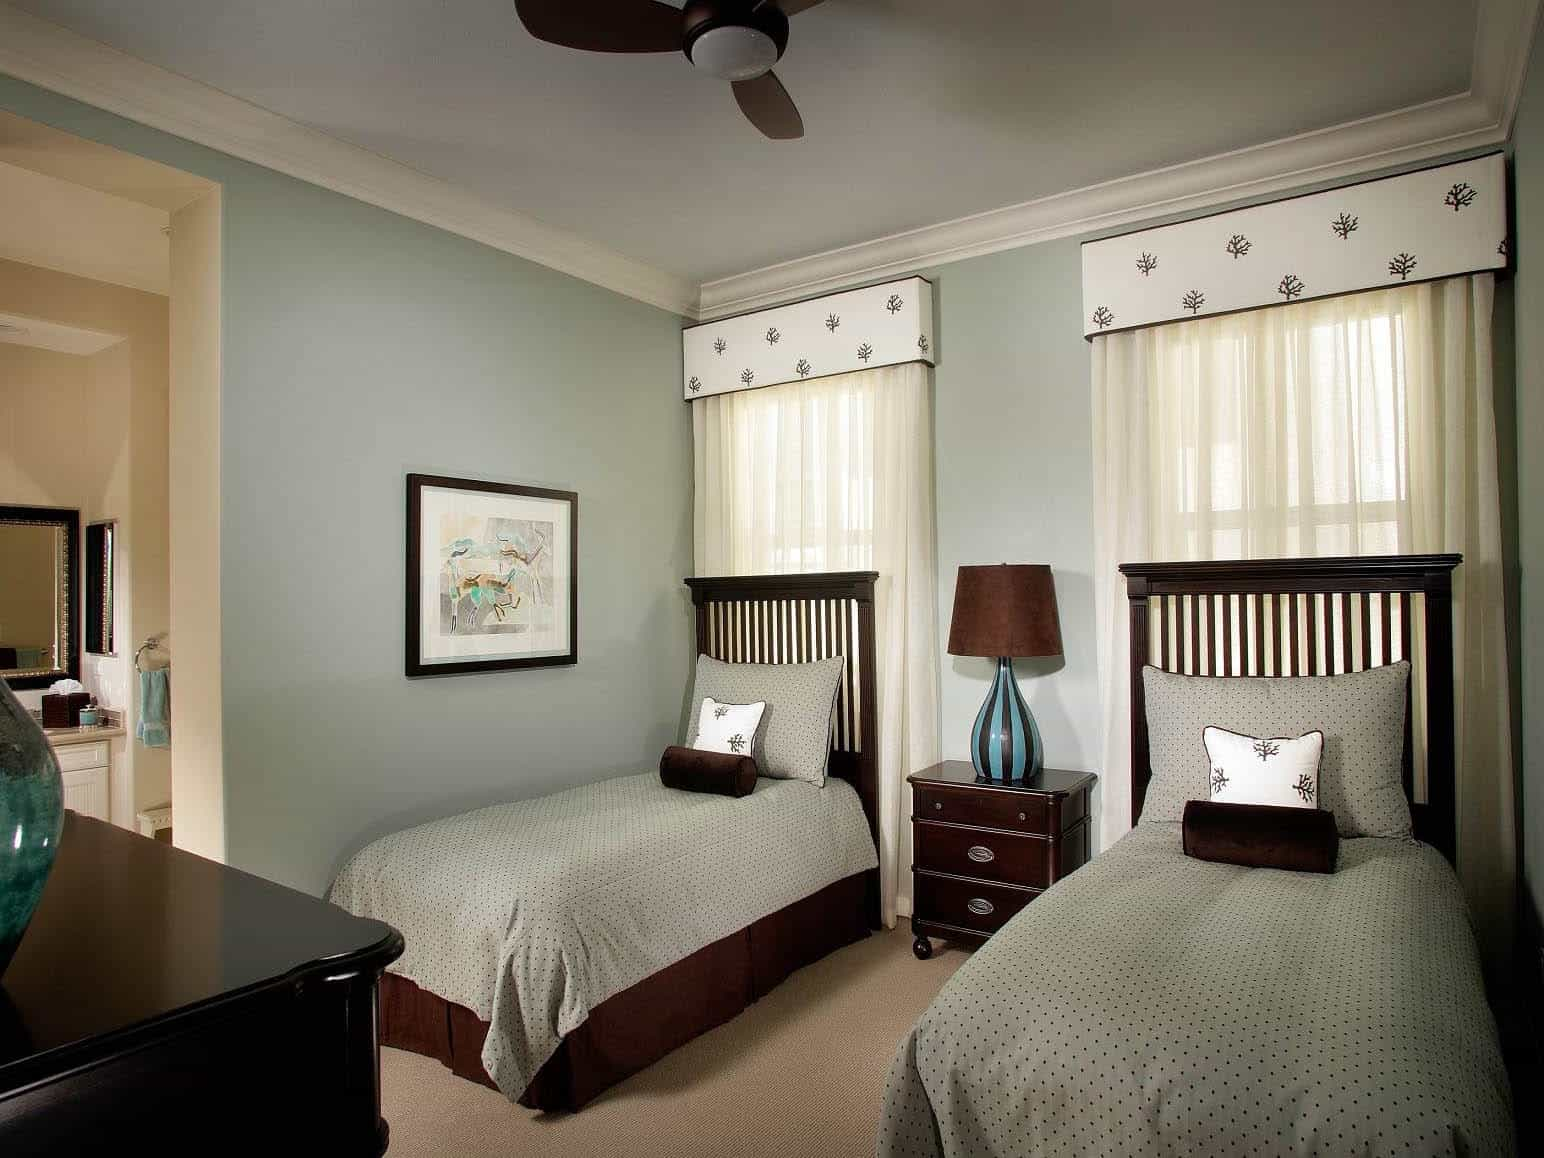 Classic Kids Bedroom With Dark Wood Furniture  (Image 9 of 27)